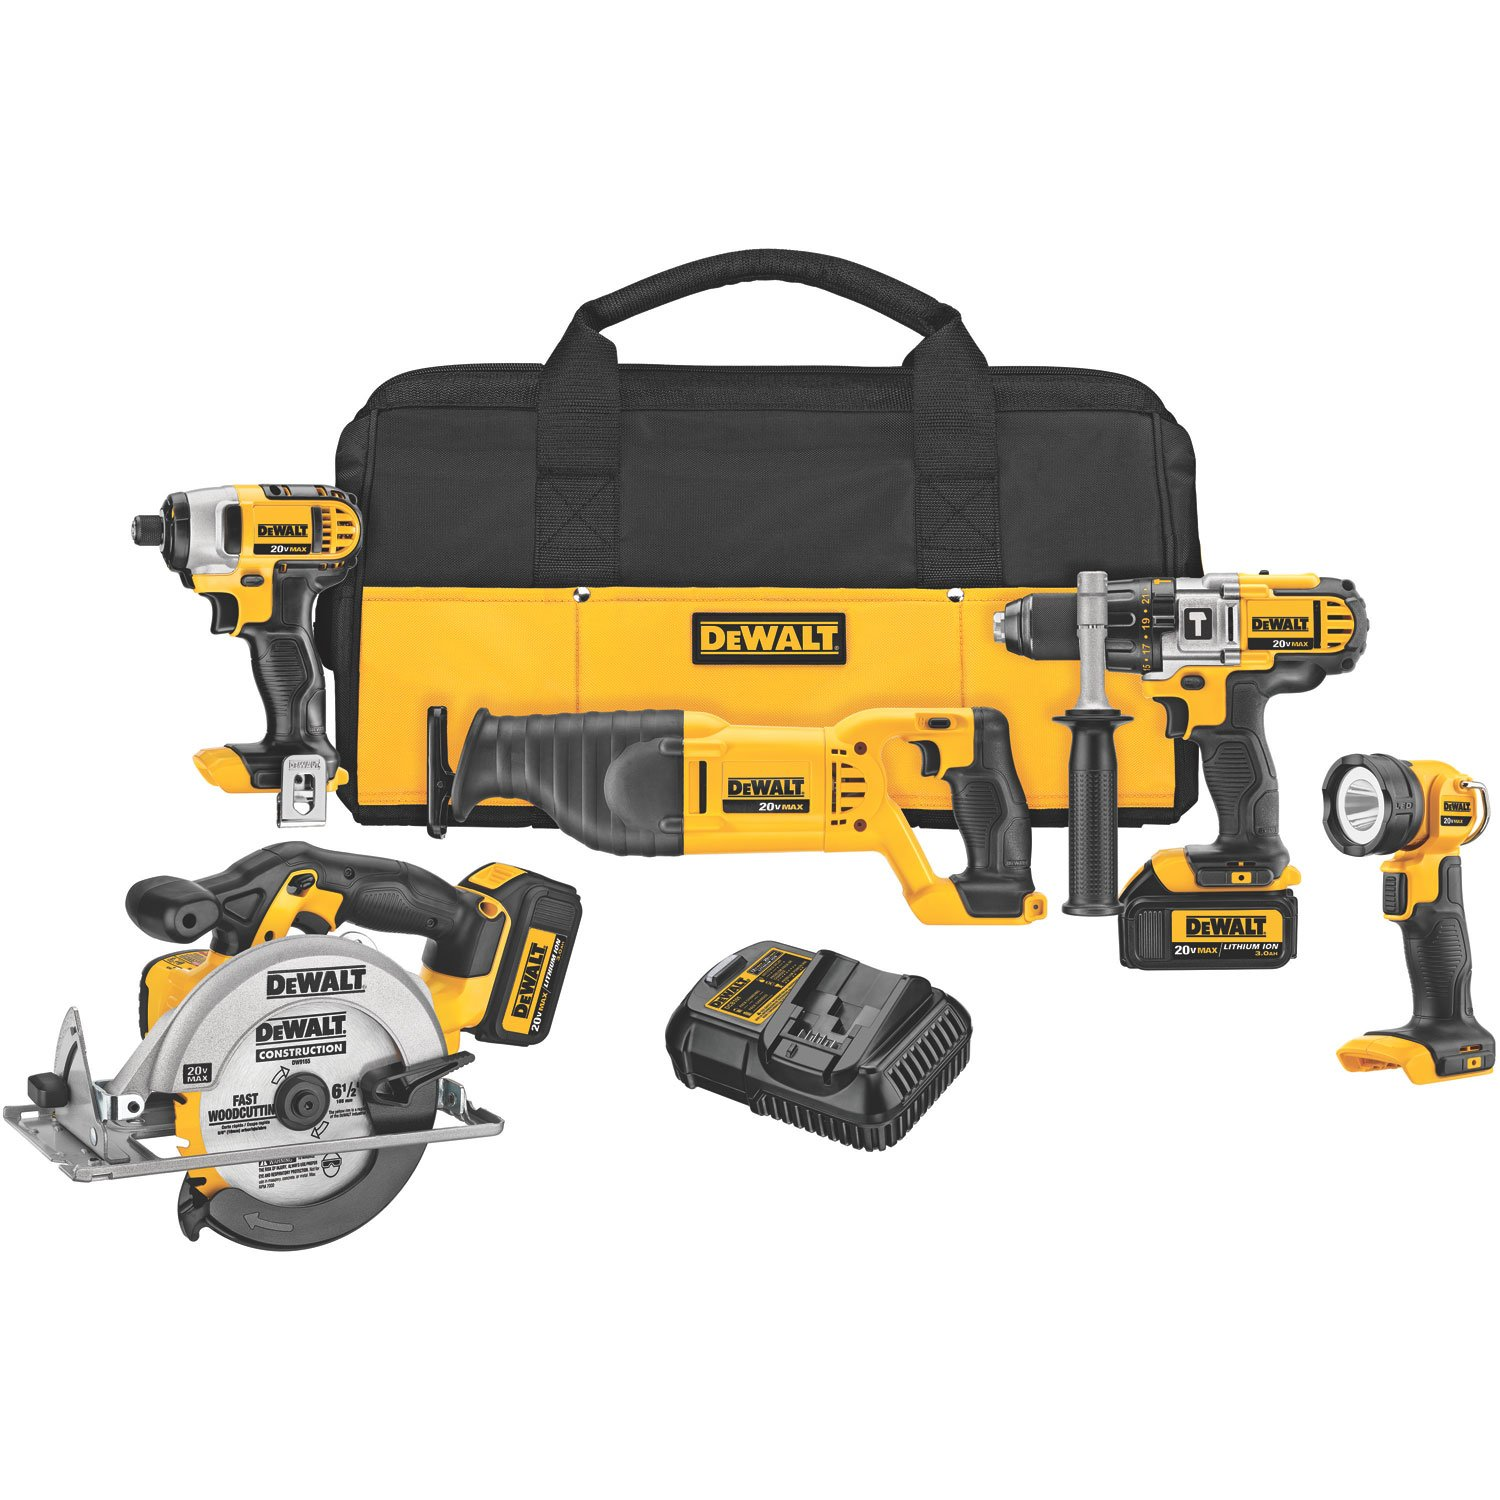 71yKygOnO1L._SL1500_ Best 5 Tool Combos on the Market